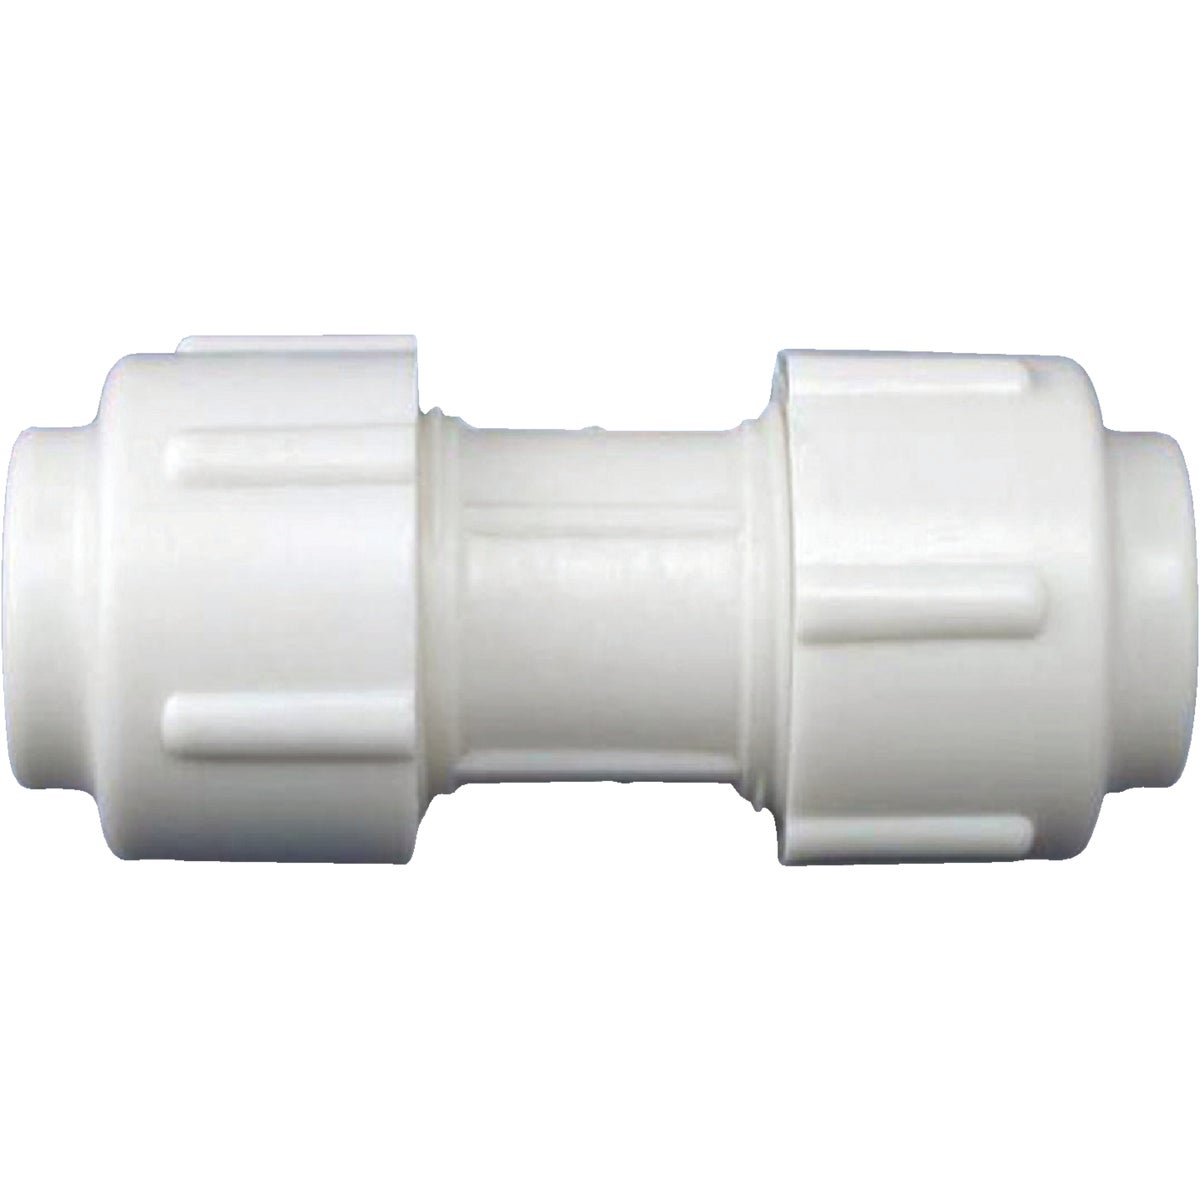 "3/4"" CONNECTOR - 16347 by Flair It West"